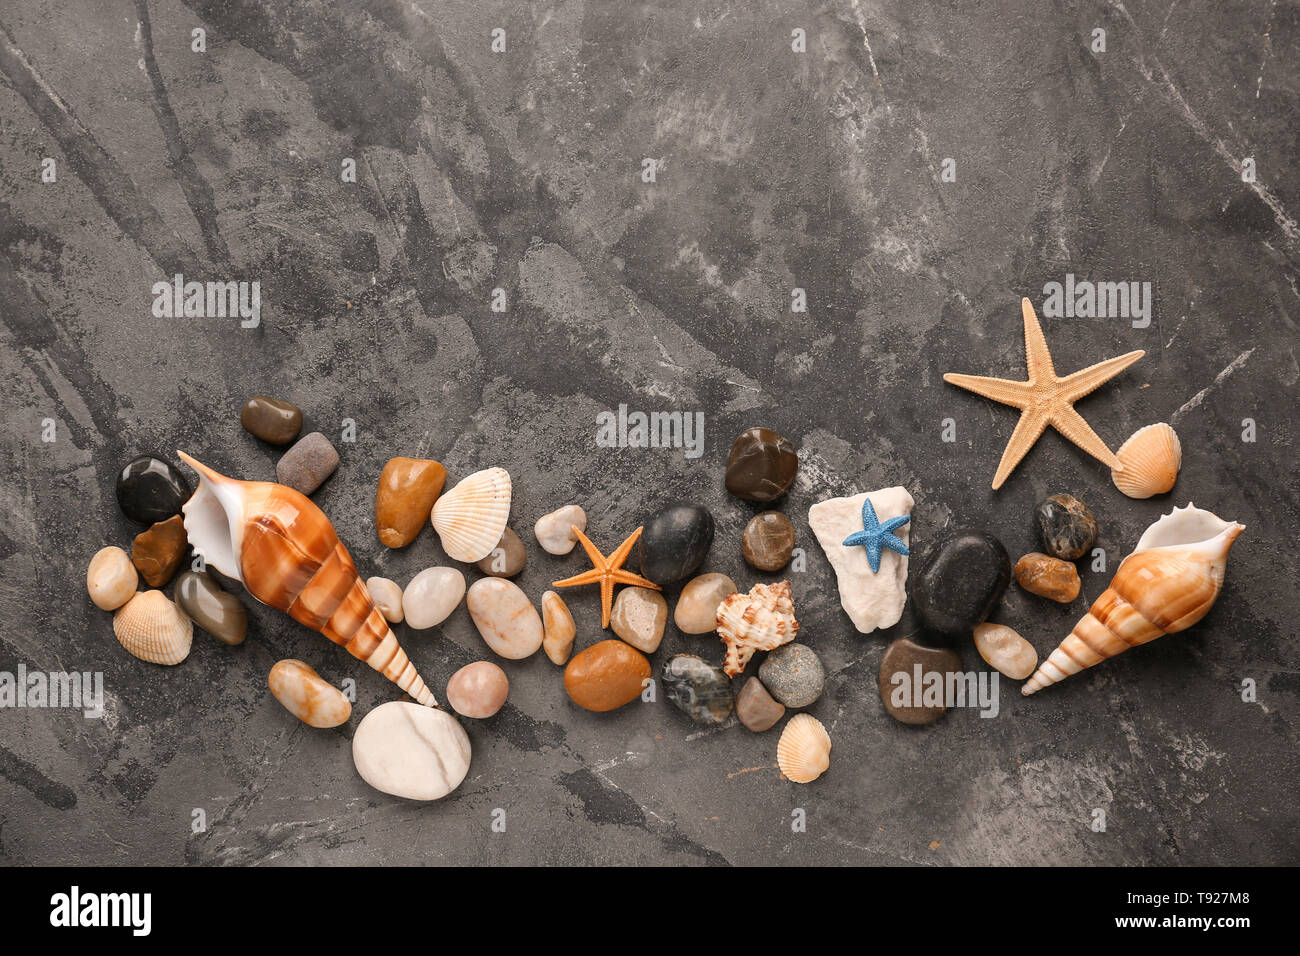 Different sea shells, starfishes and stones on grey background - Stock Image